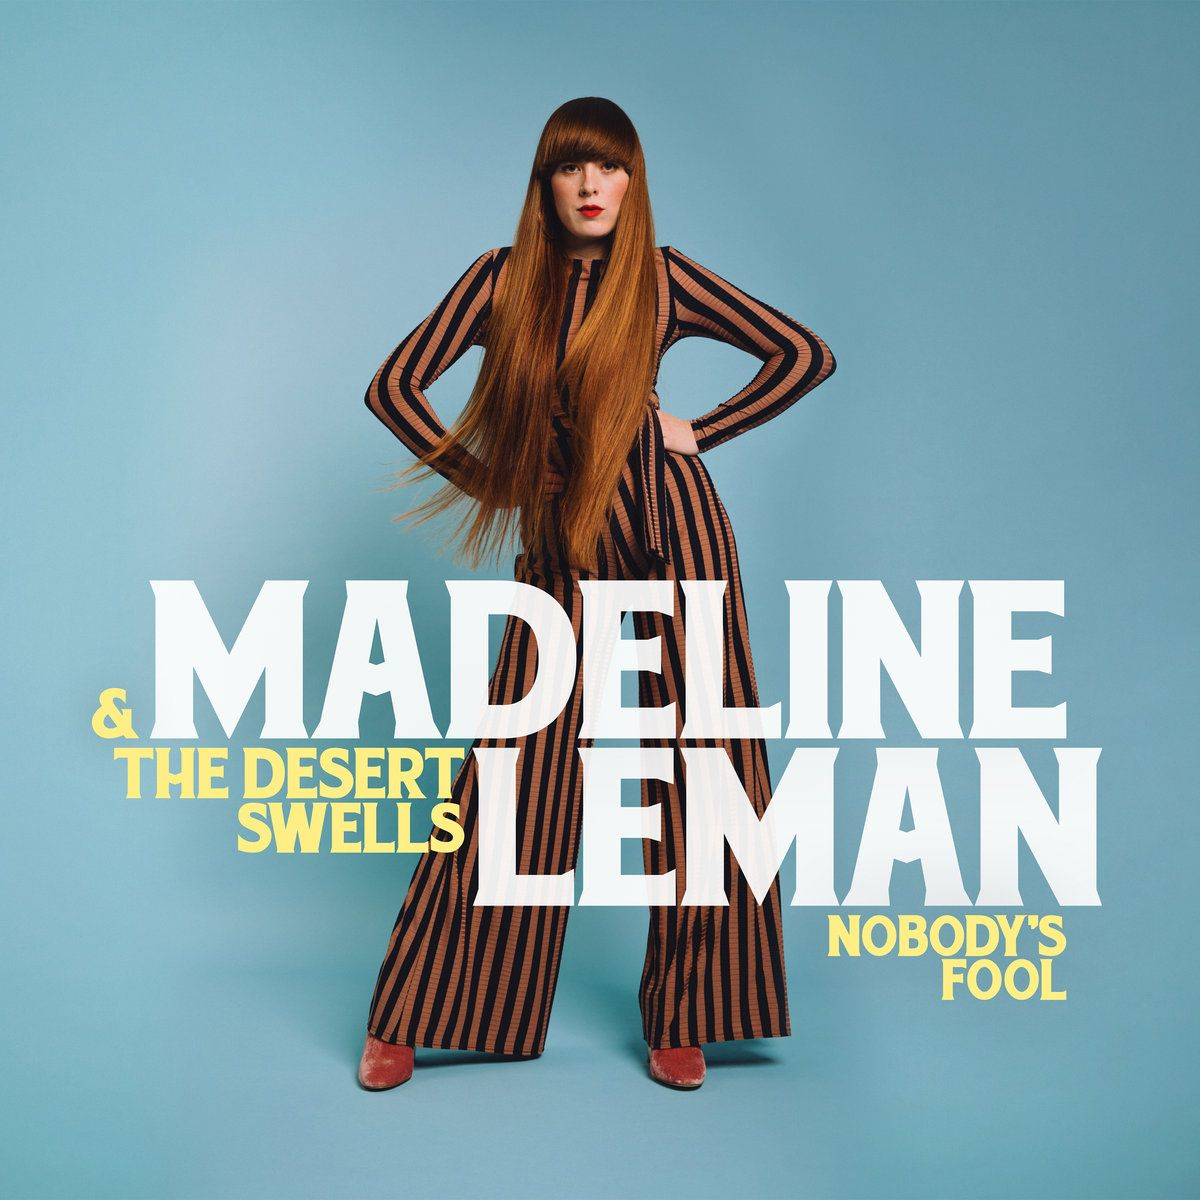 MADELINE LEMAN & THE DESERT SWELLS - NOBODY'S FOOL - VINYL LP - Wah Wah Records